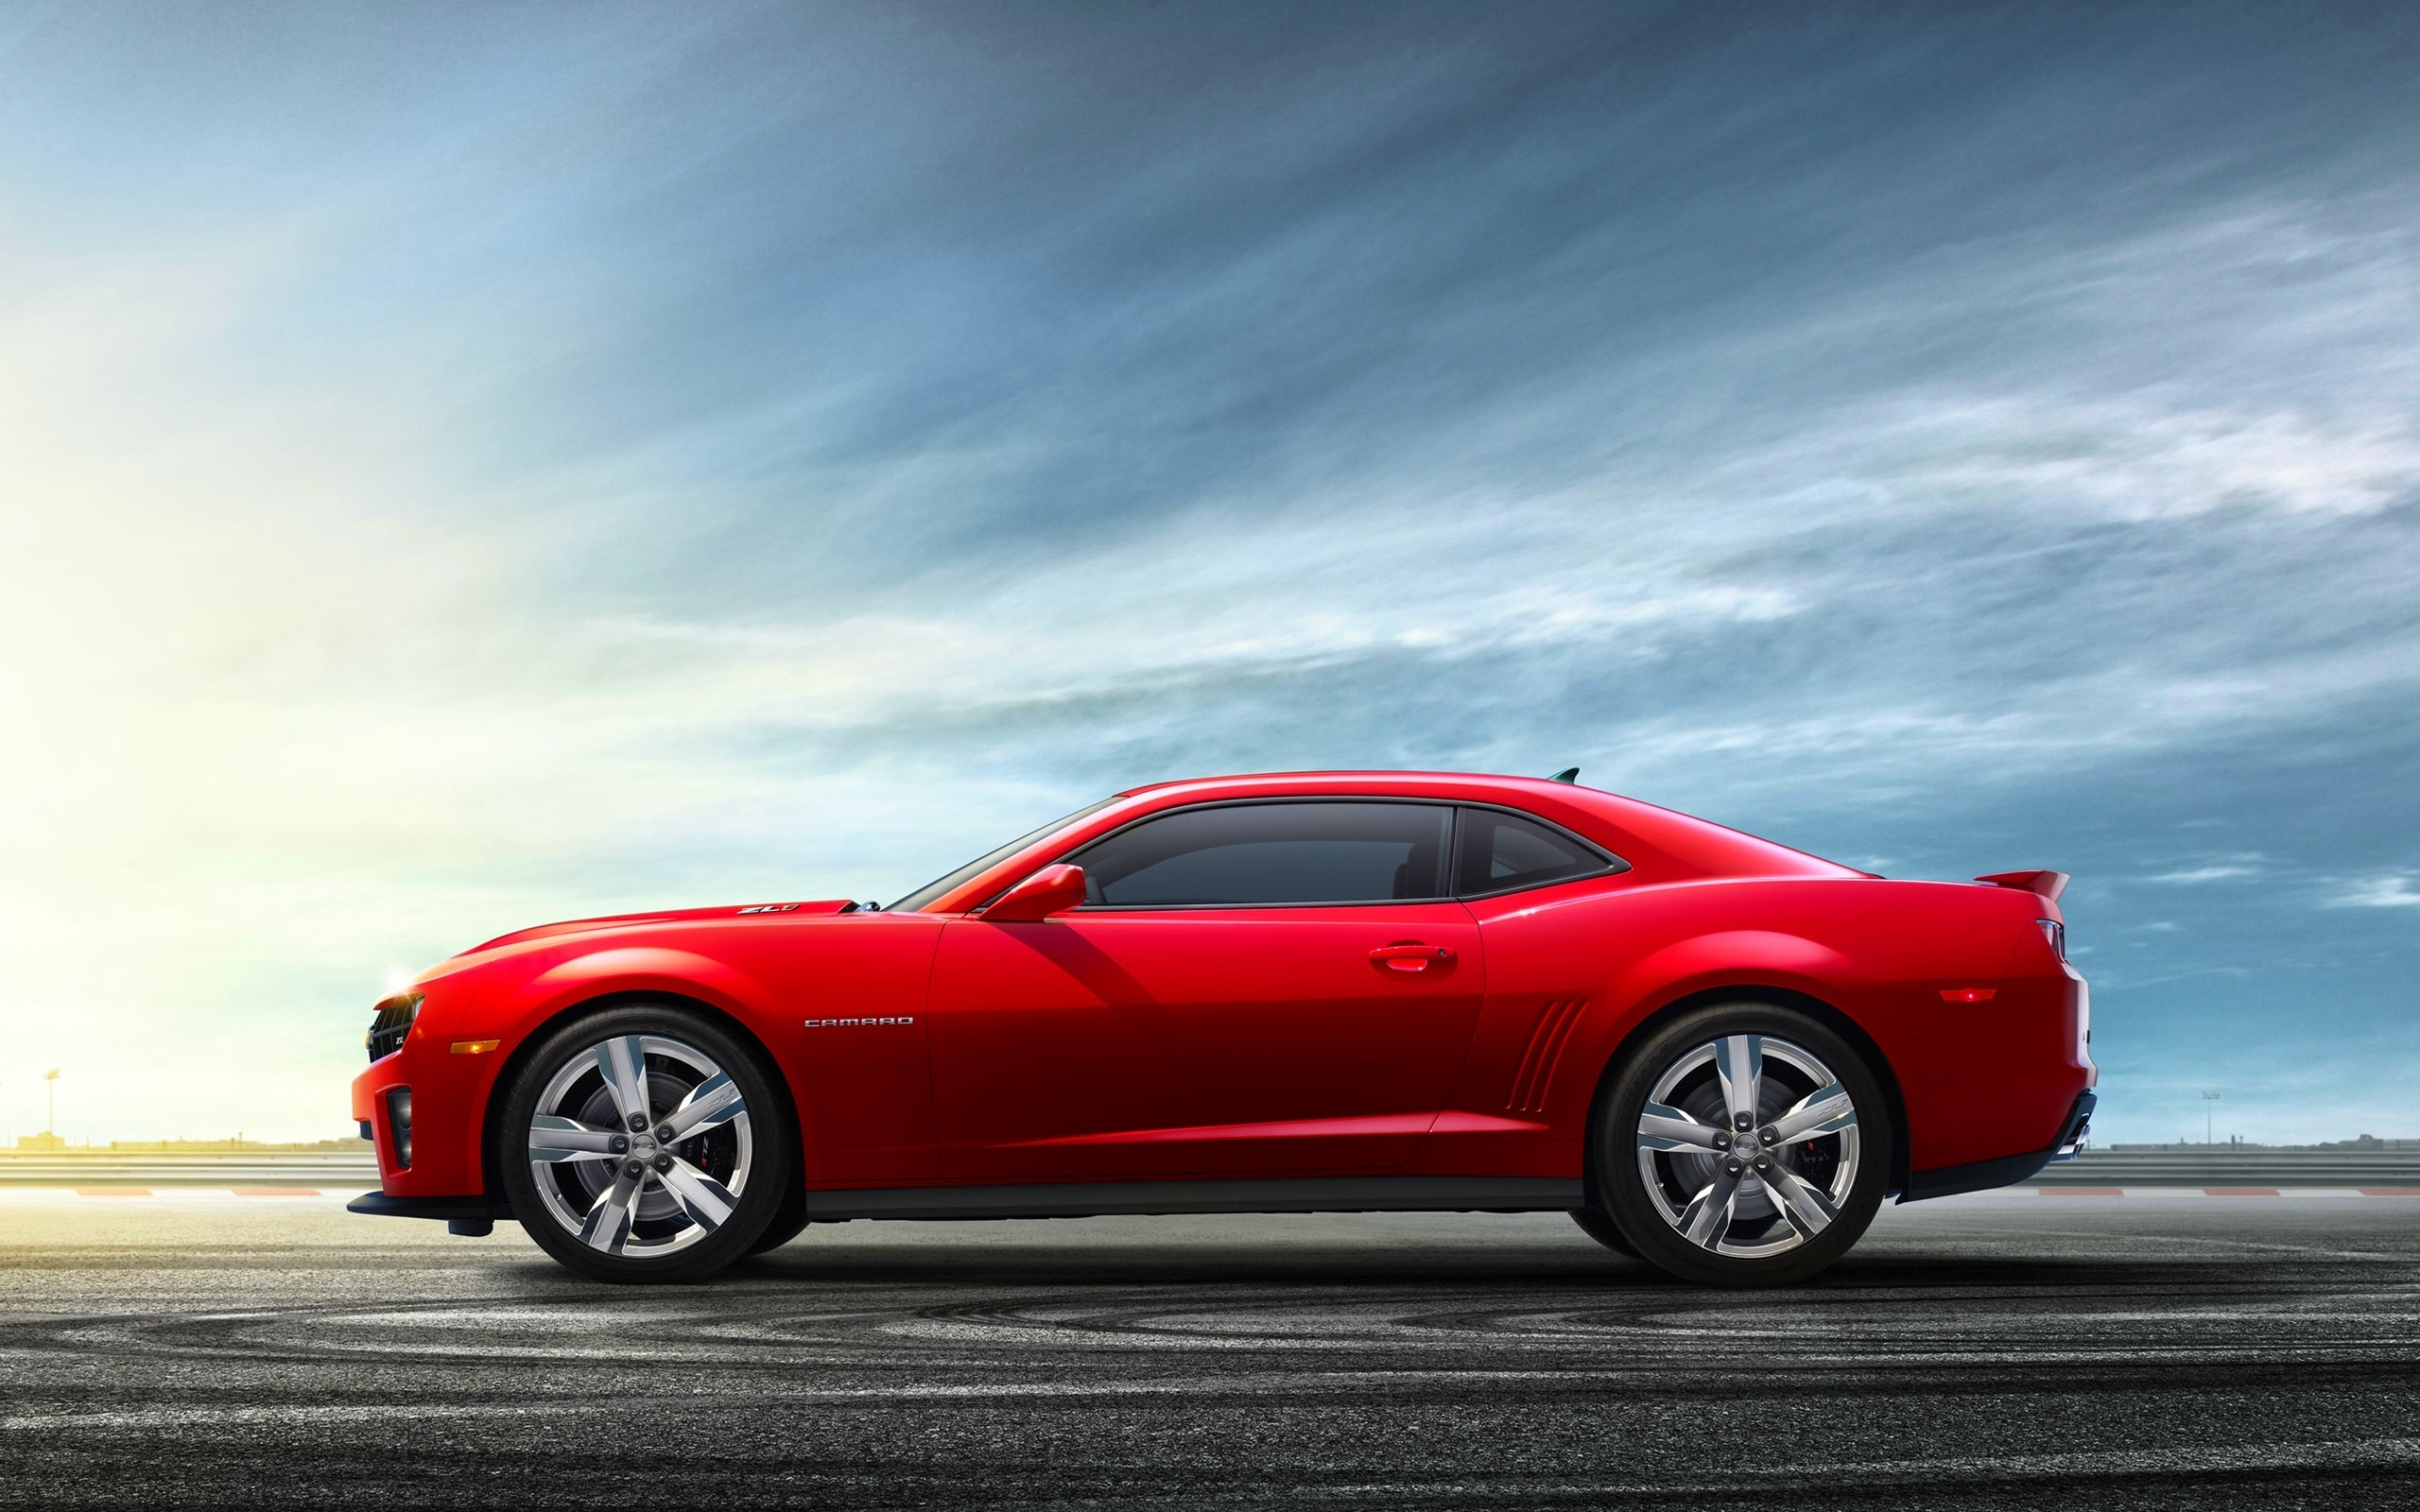 Wallpaper Chevrolet Camaro Red Car Side View 2560x1600 Hd Picture Image